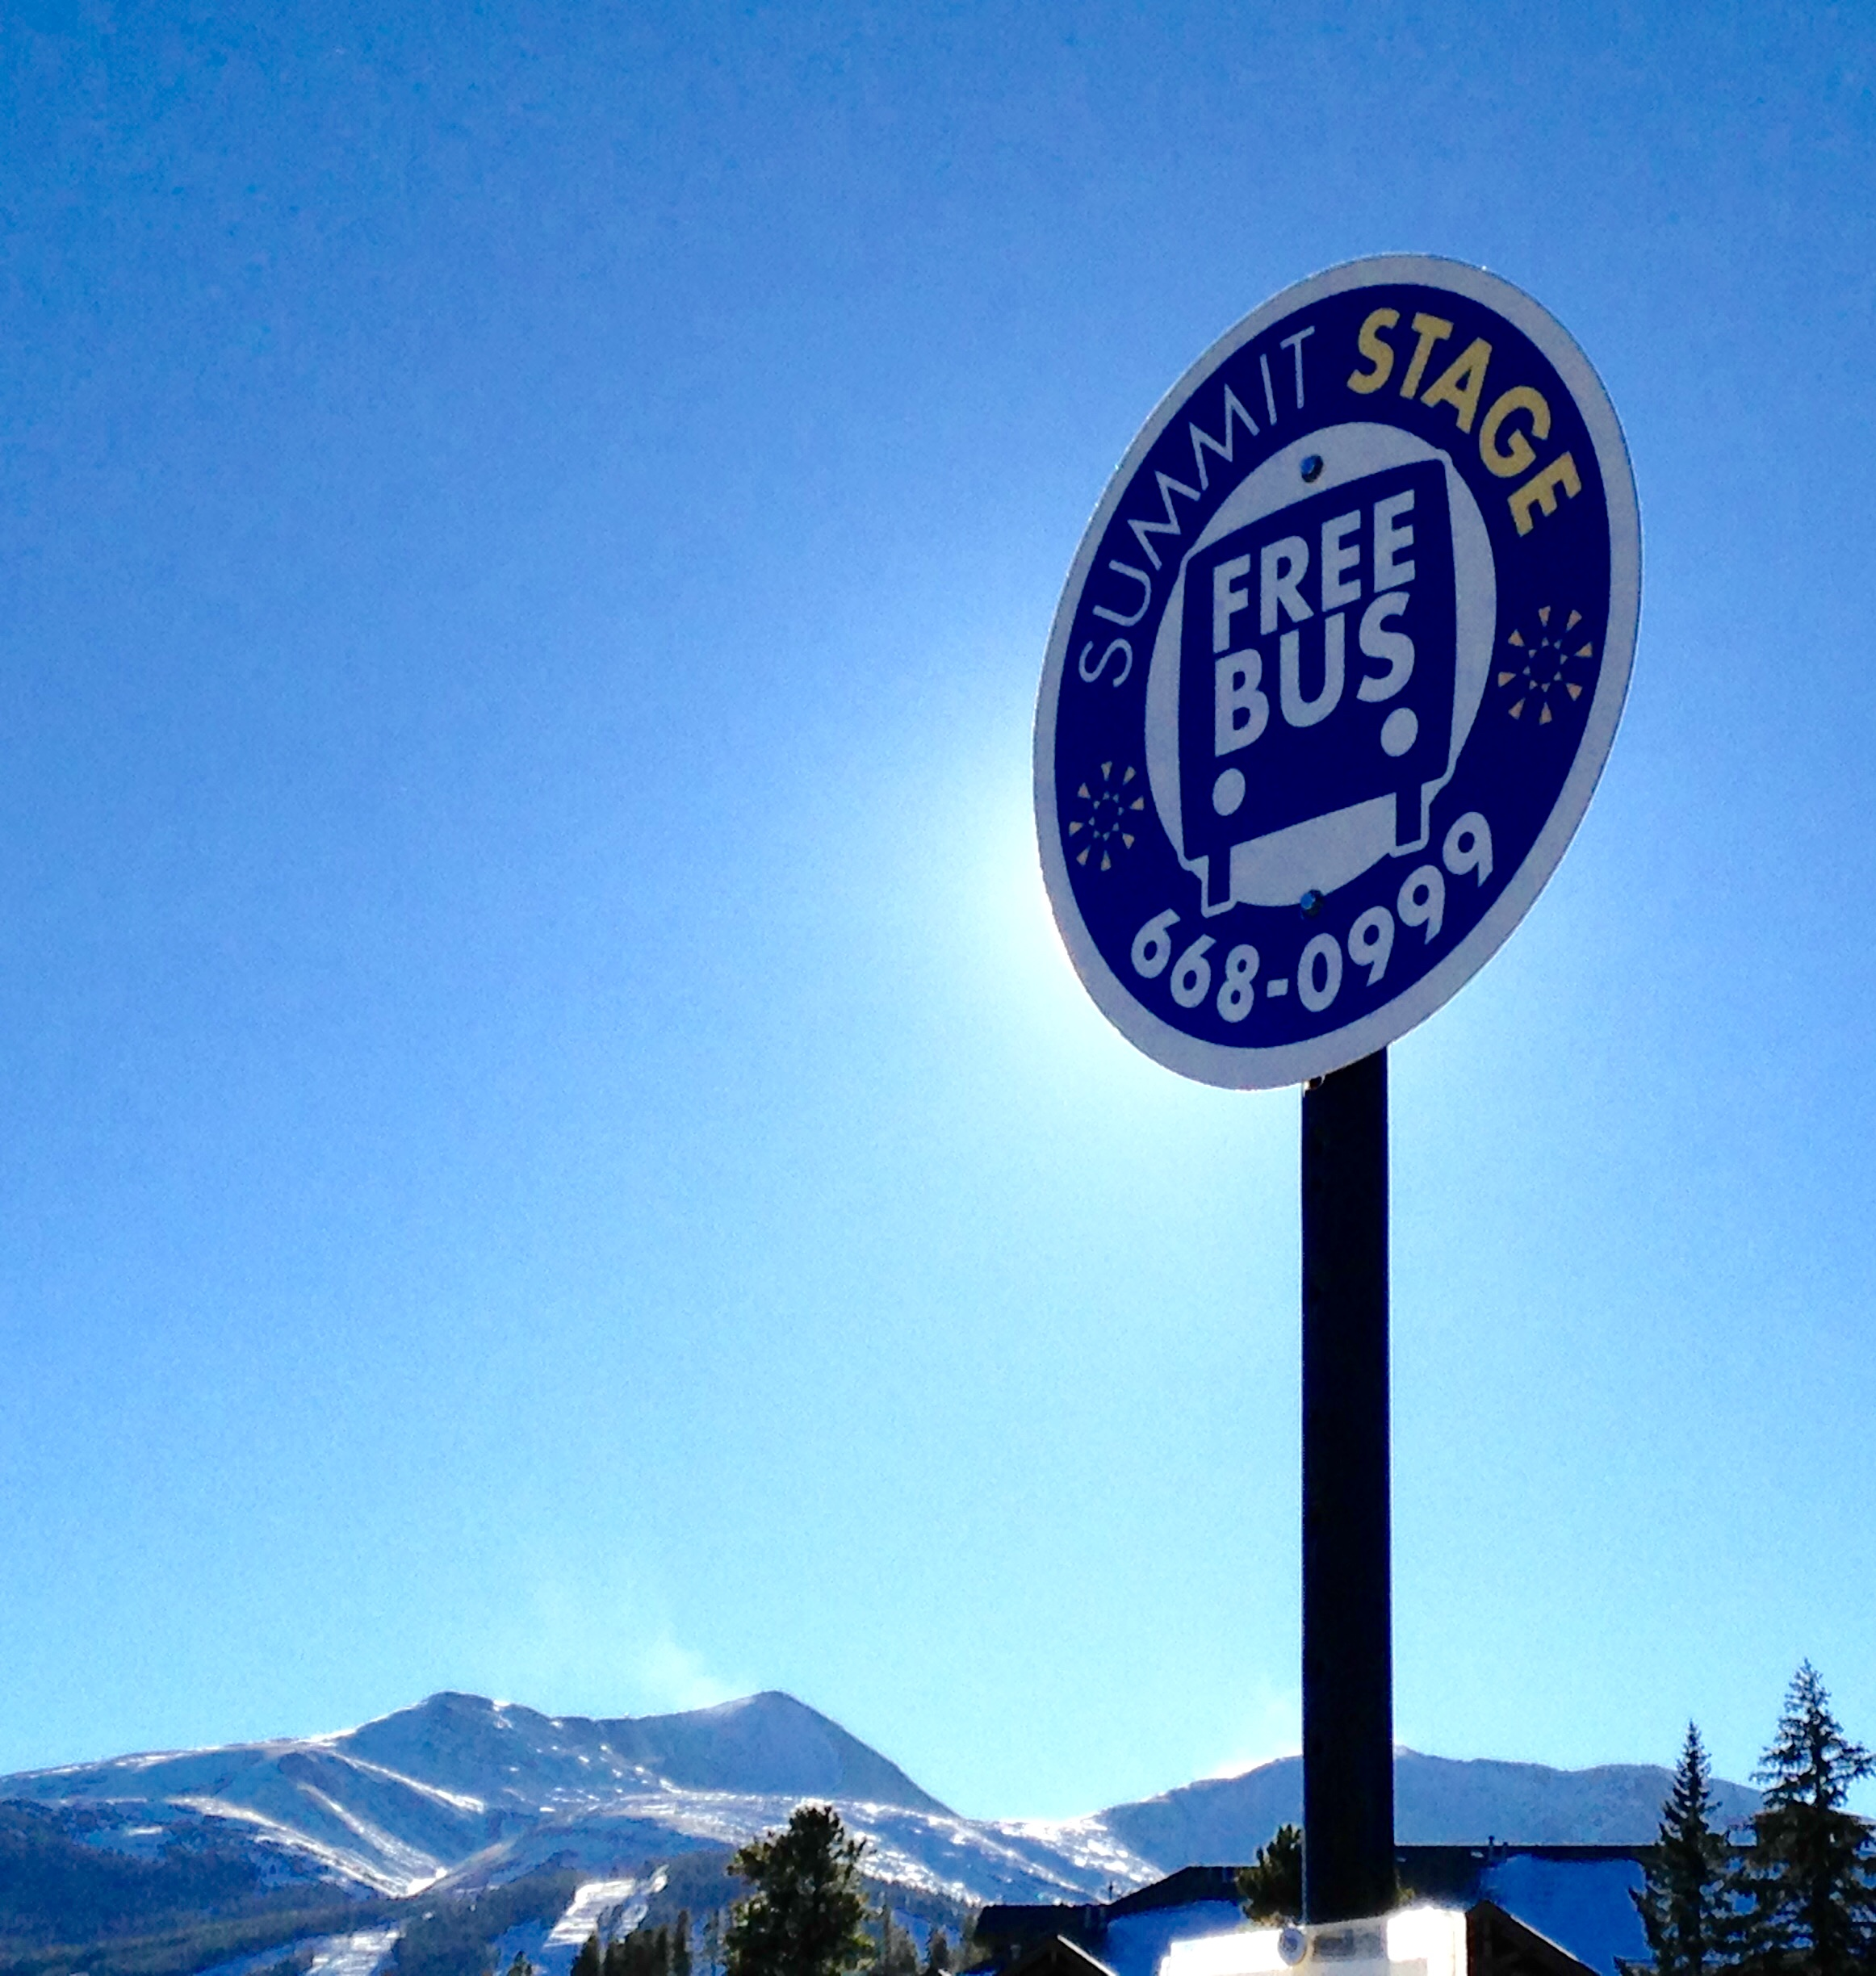 Photo of a Summit Stage bus stop sign